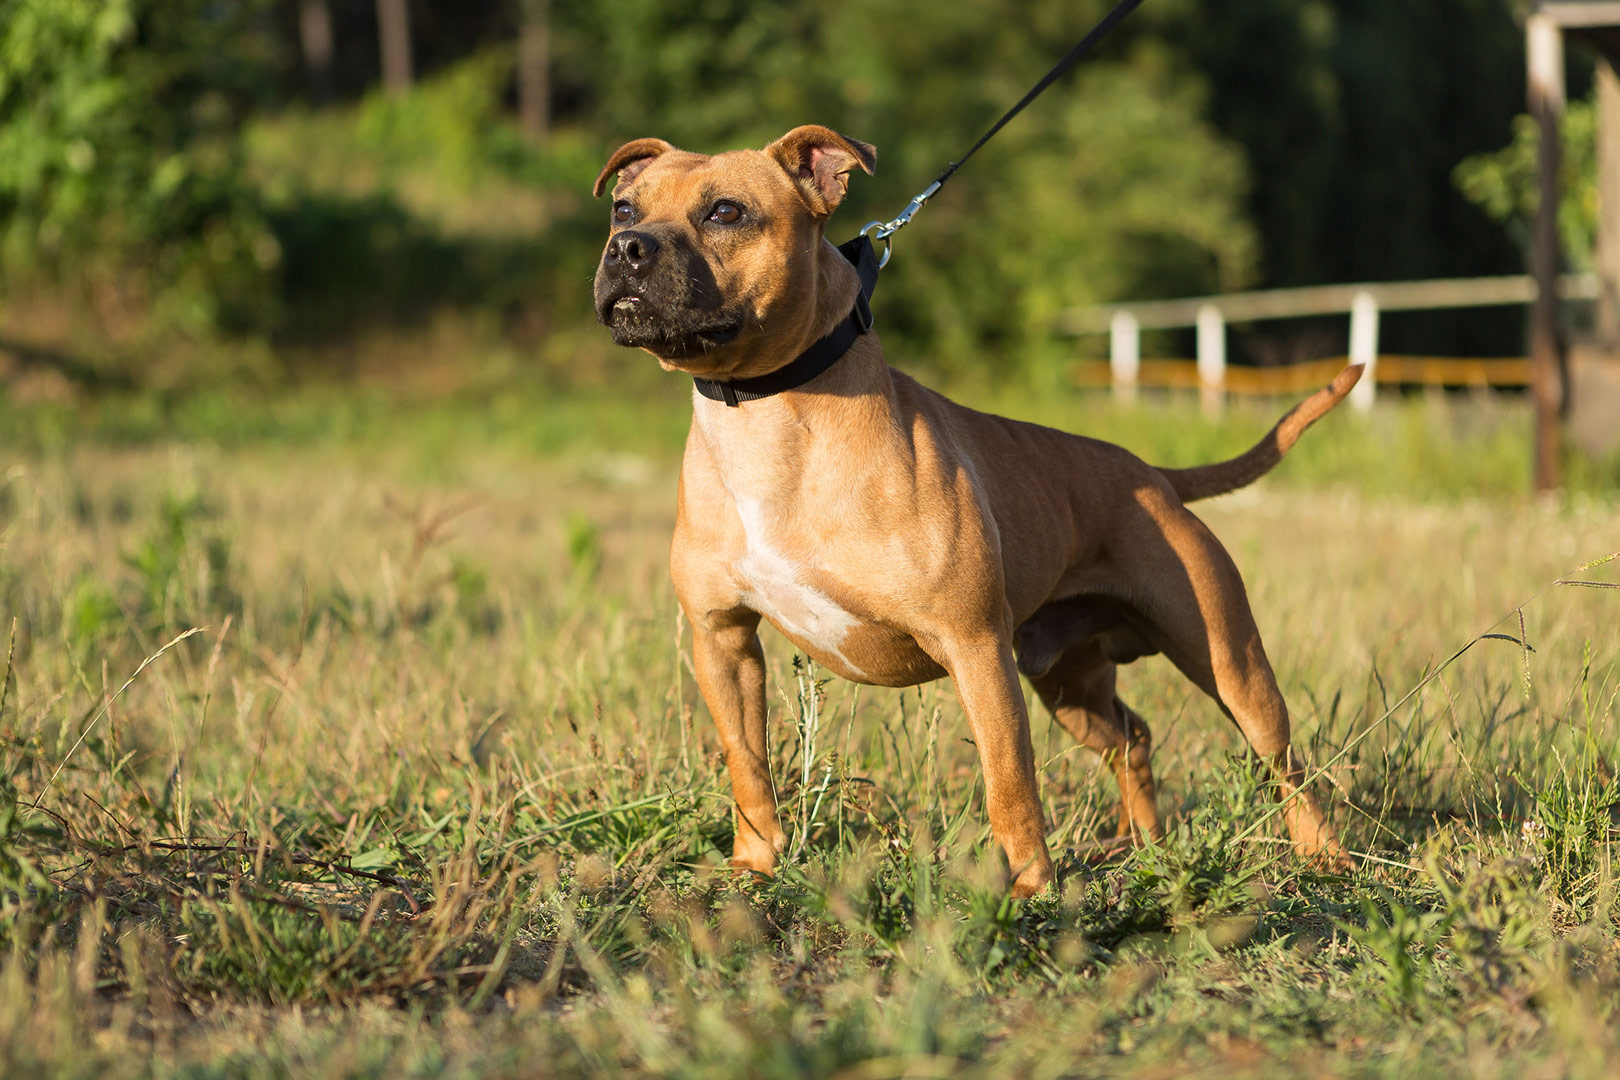 Staffordshire Bull Terrier out on a walk